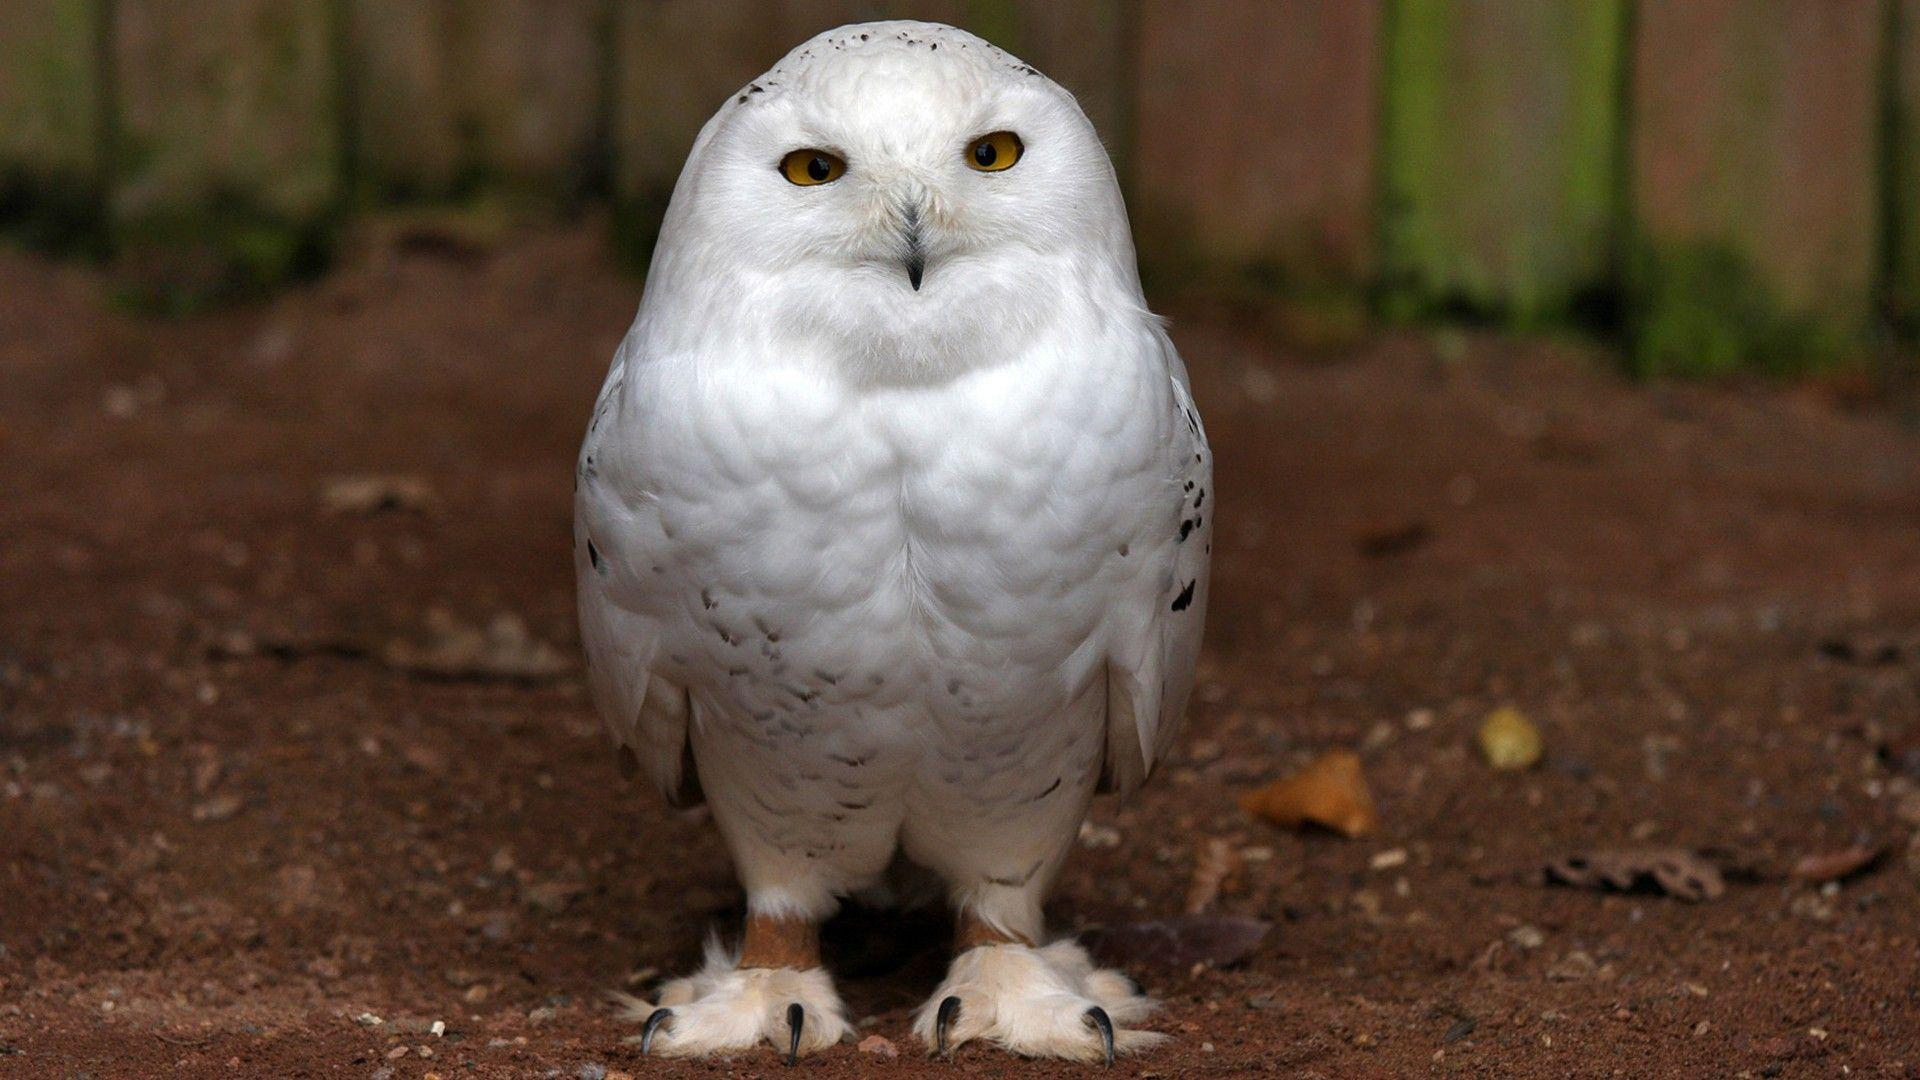 White Owl Wallpapers Wallpaper Cave